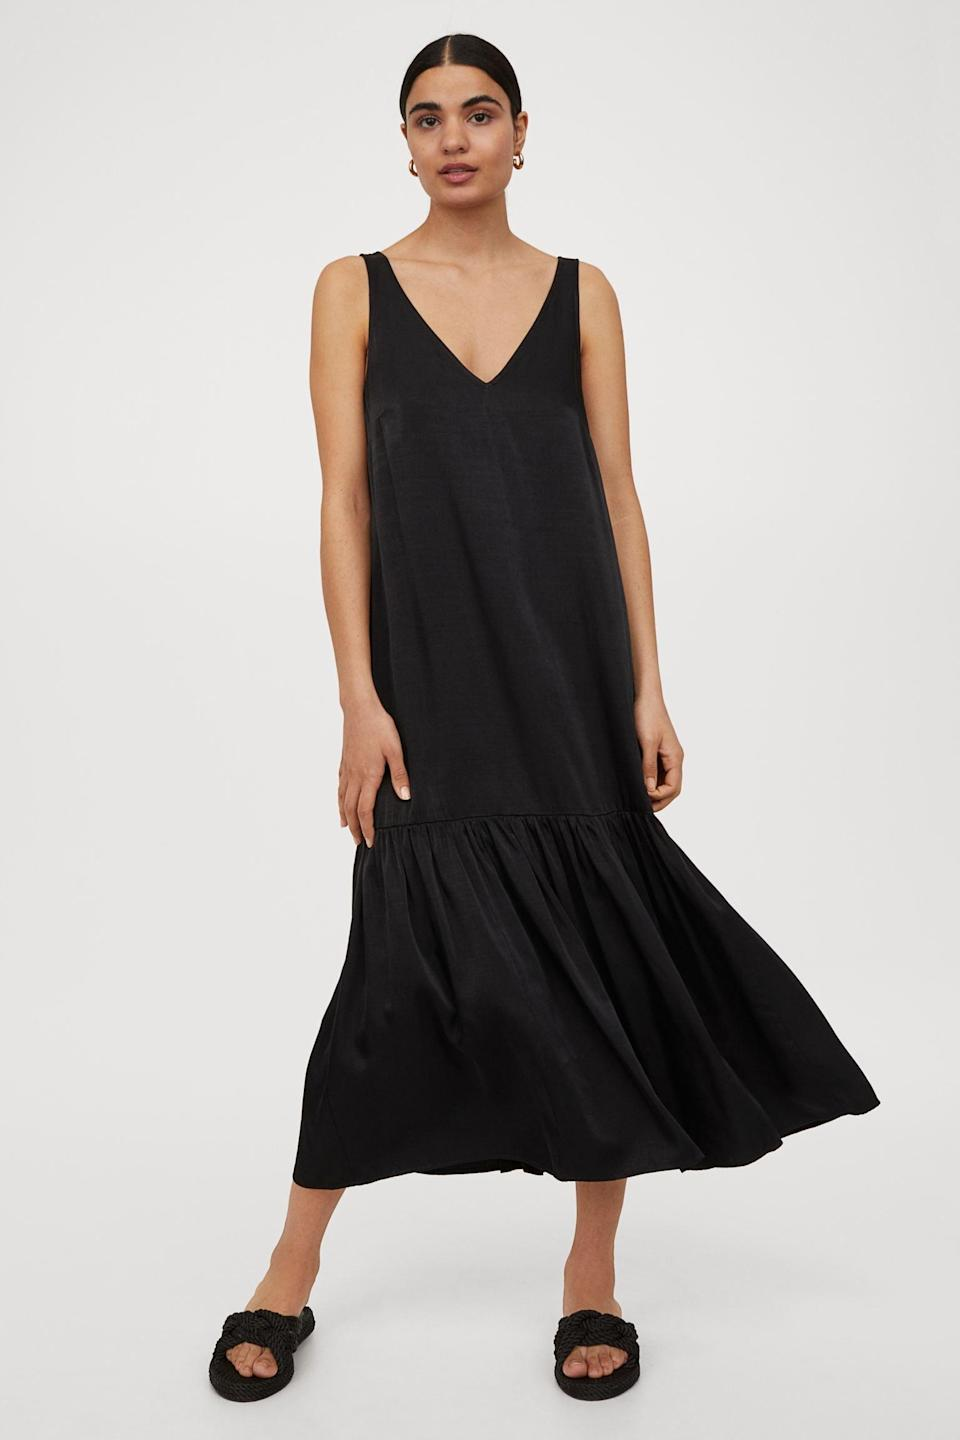 <p>This <span>H&amp;M V-Neck Dress</span> ($31, originally $35) will look chic no matter what you pair it with. Style it with kitten heels and a small shoulder bag, and you're ready for dinner followed by a night out.</p>